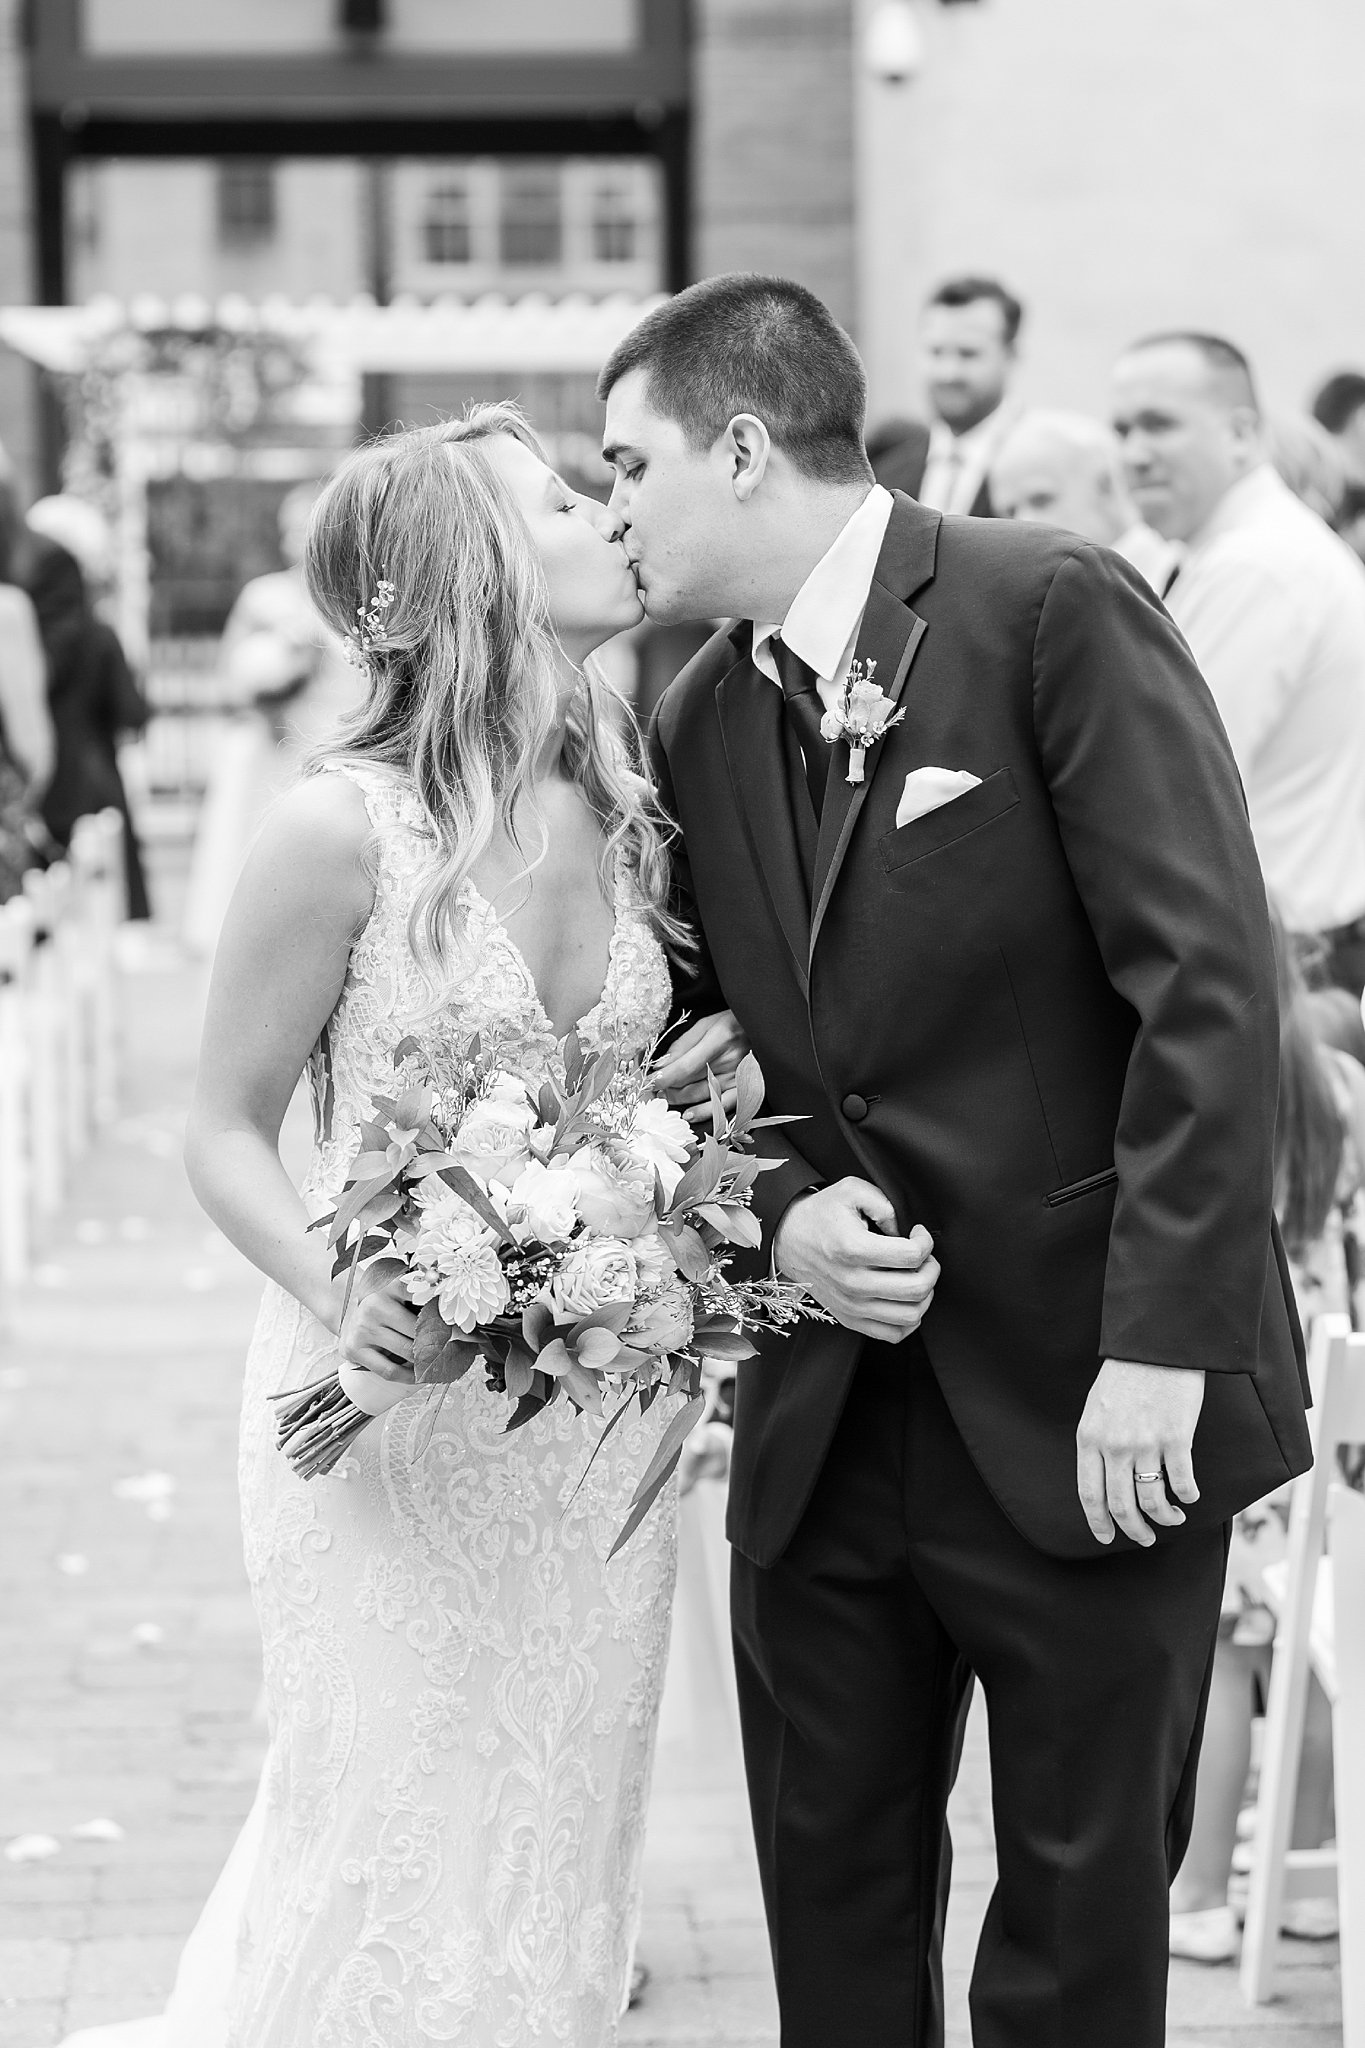 joyful-romantic-modern-laid-back-wedding-photography-in-detroit-ann-arbor-northern-mi-and-chicago-by-courtney-carolyn-photography_0020.jpg